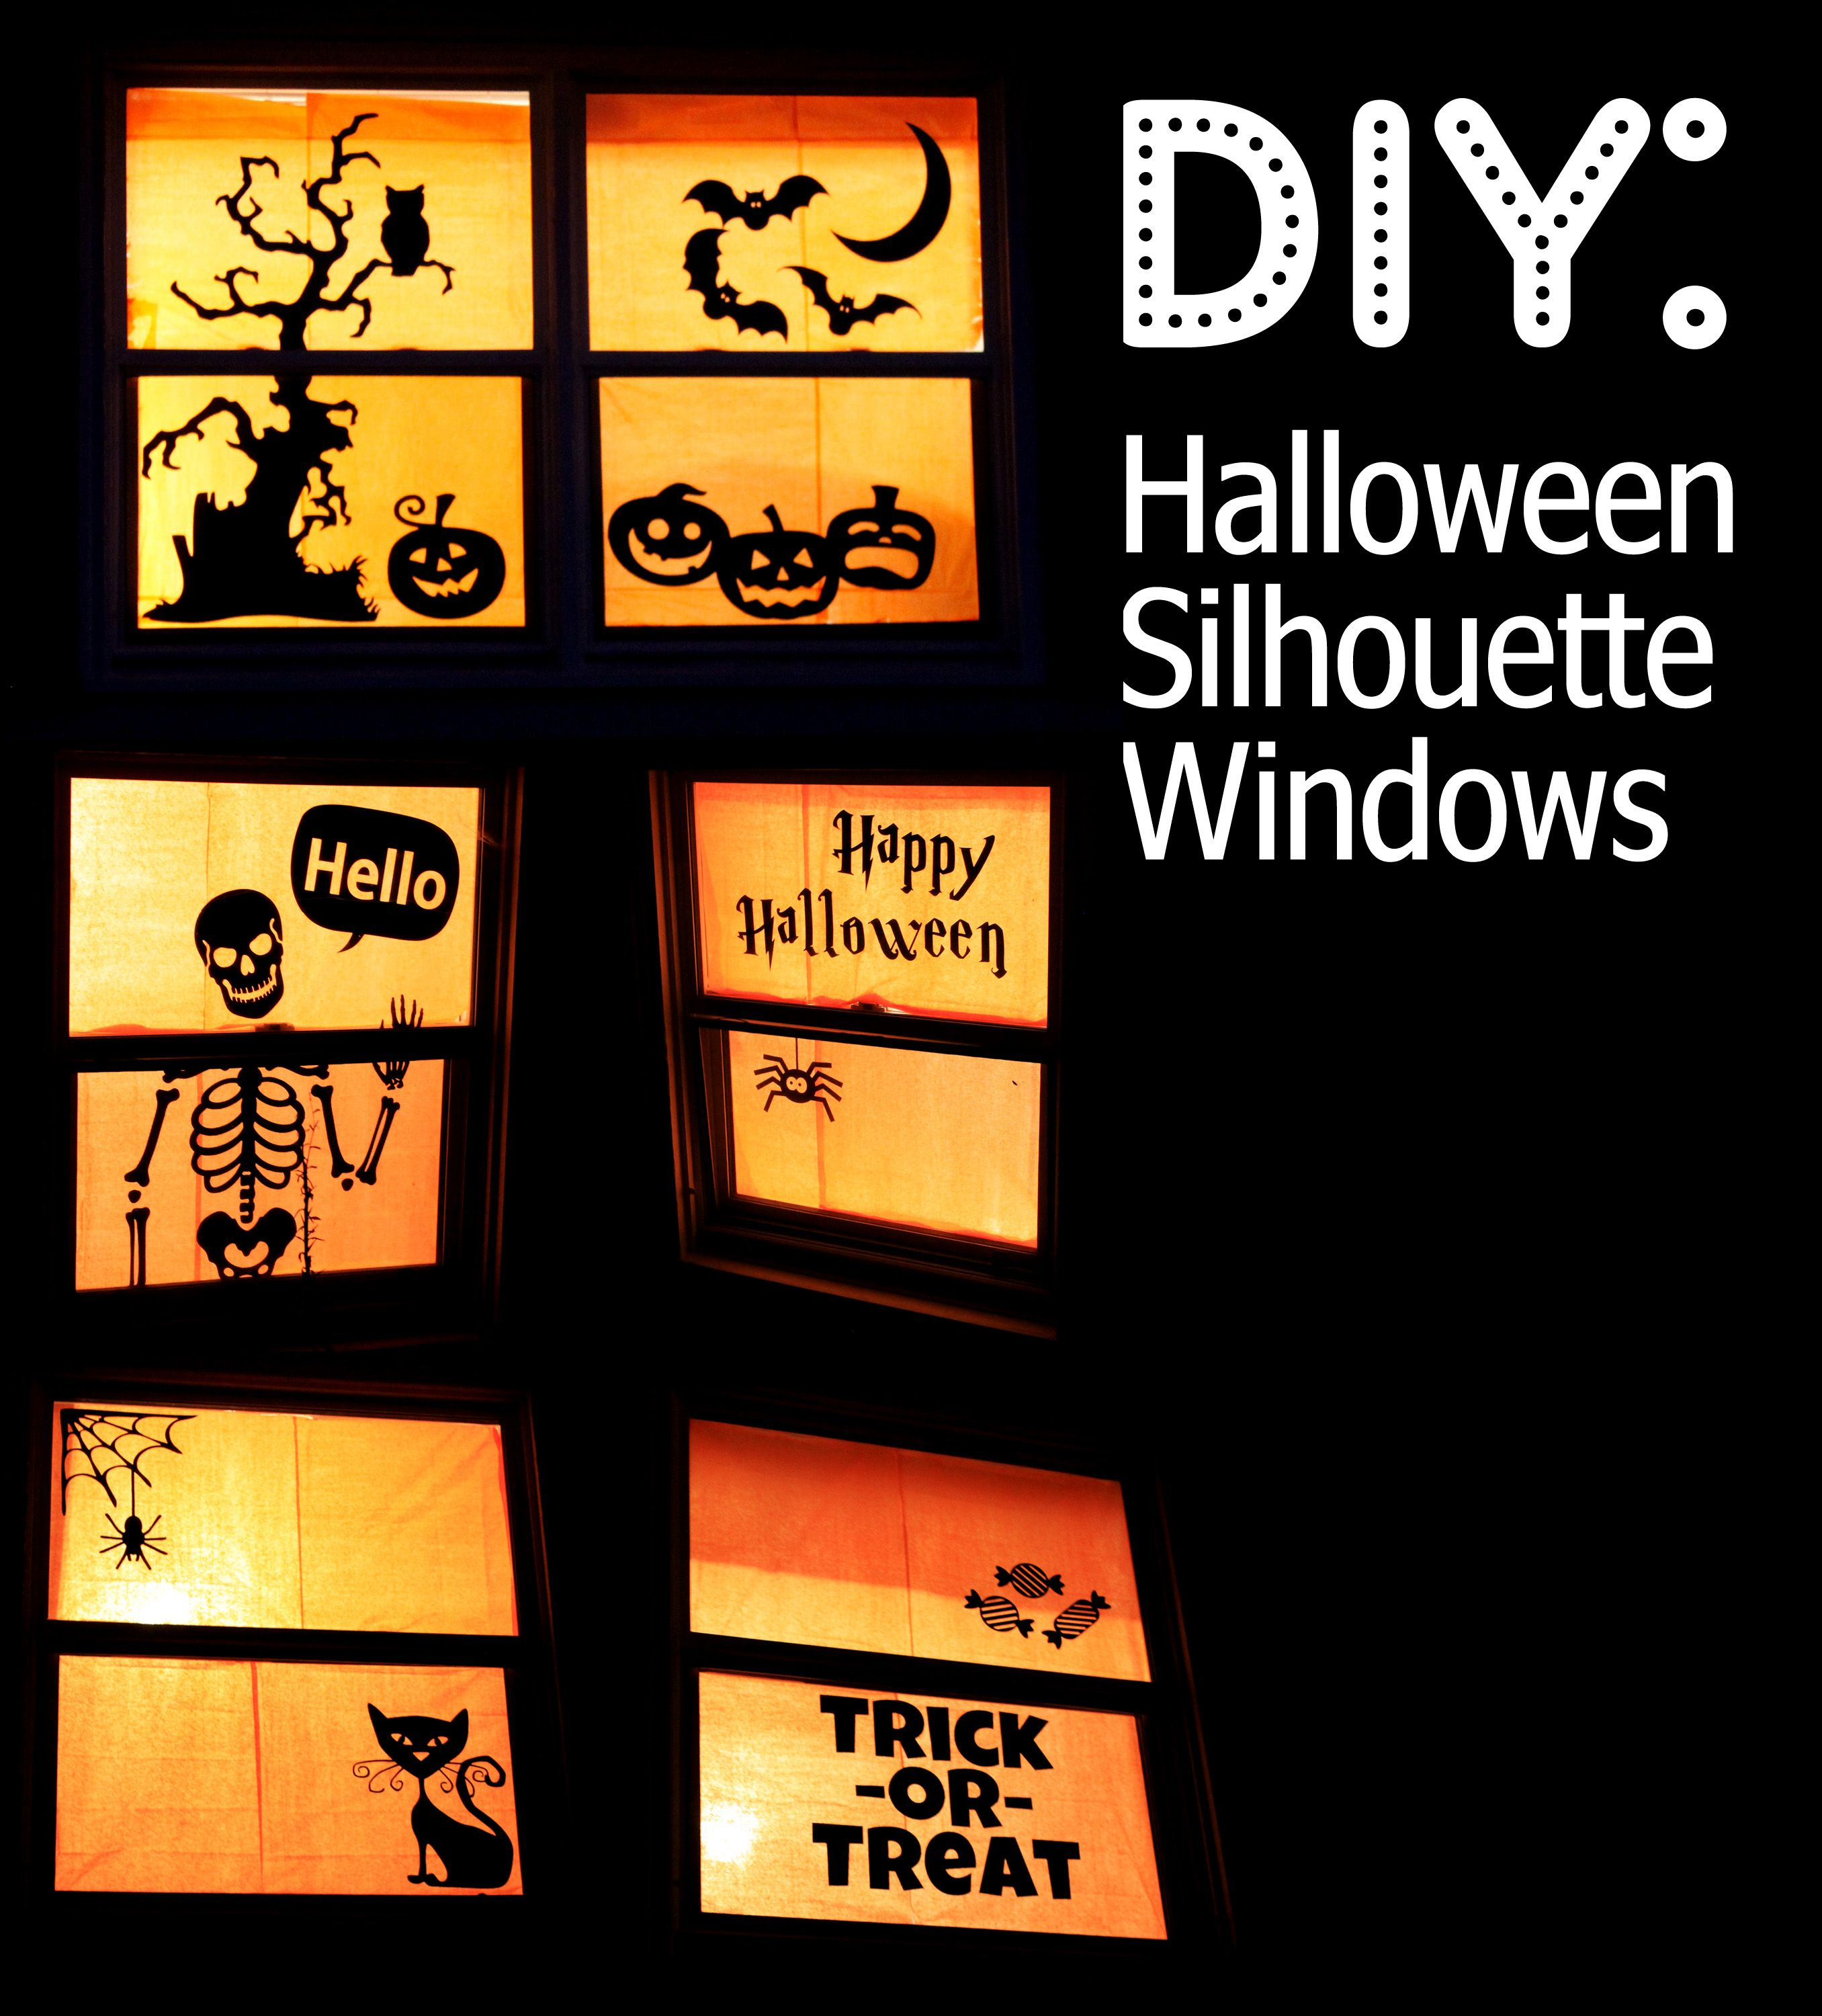 a window diy decorationssimple for decorations s cake simple decorating here simp decor crazy cool halloween party